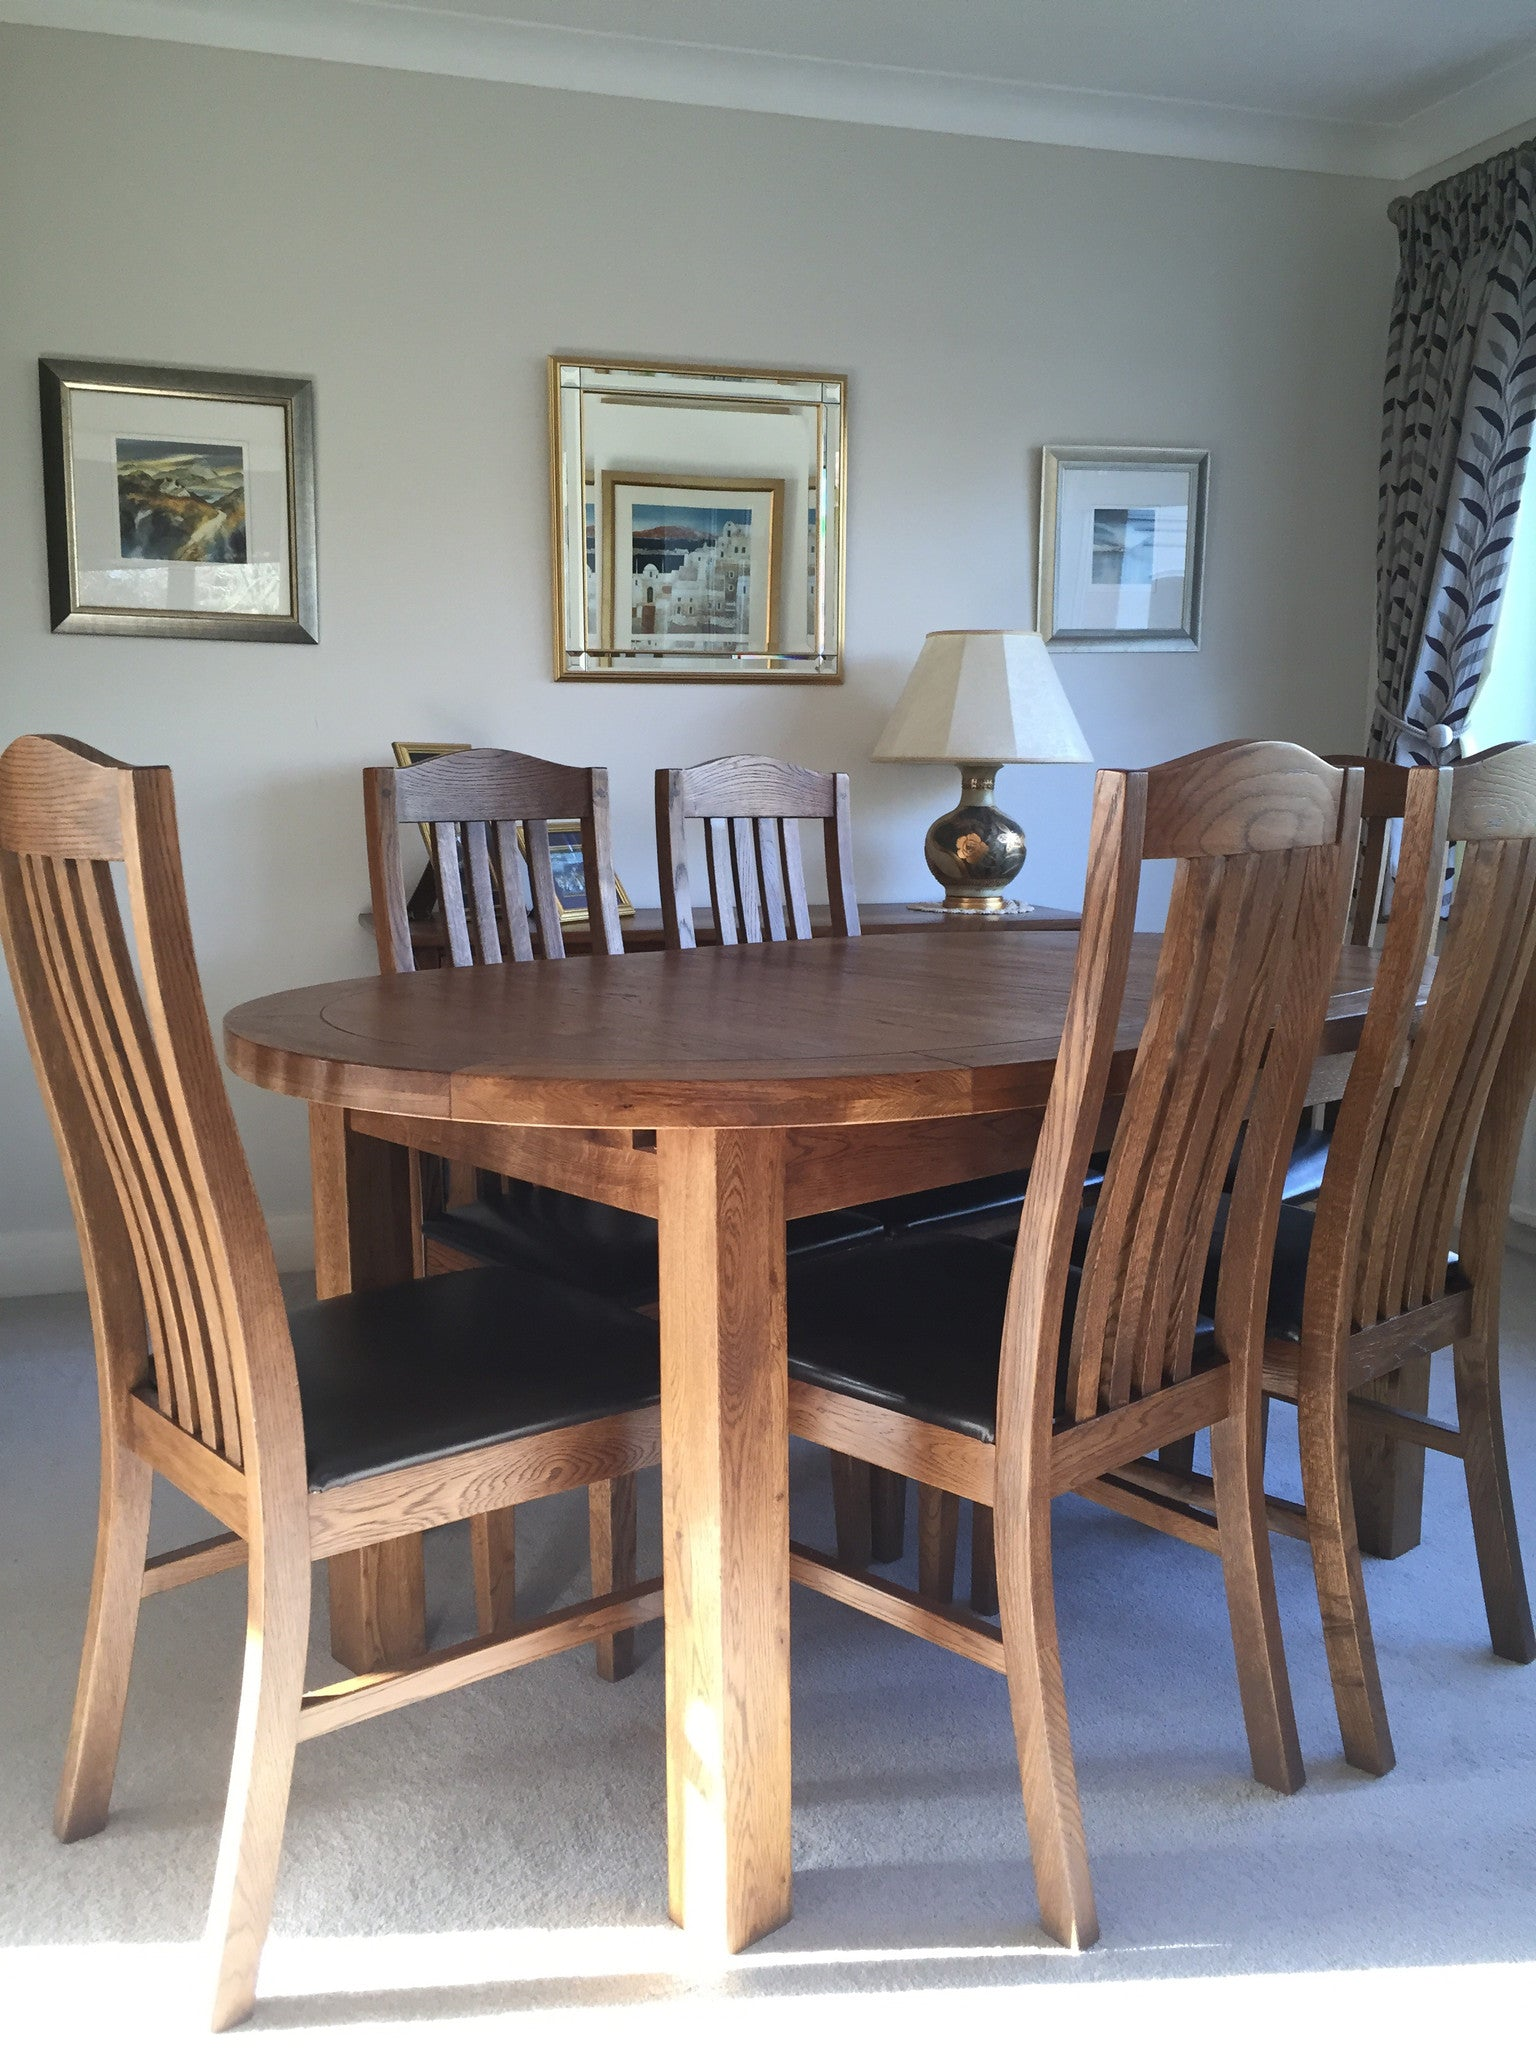 The Empire Oval Extending Dining Table